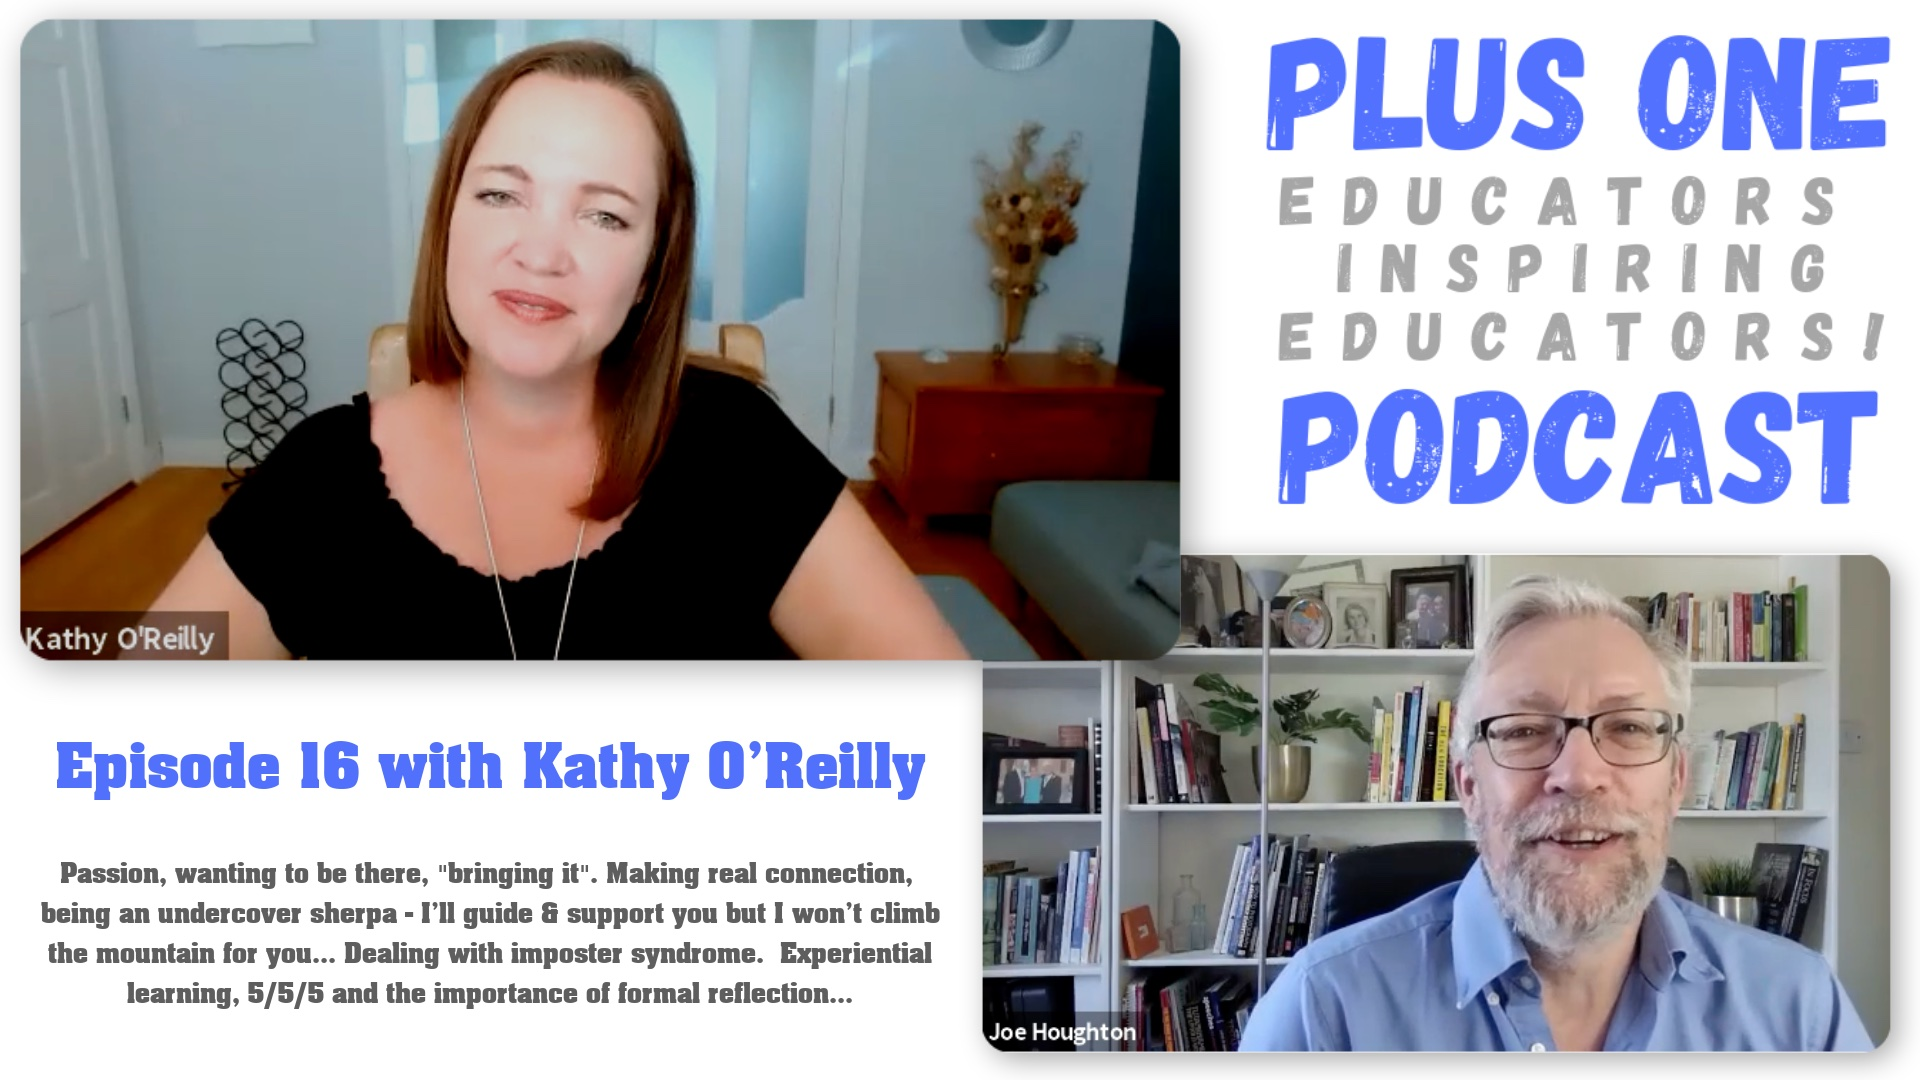 Episode 16 - Kathy O'Reilly - The Plus One Podcast